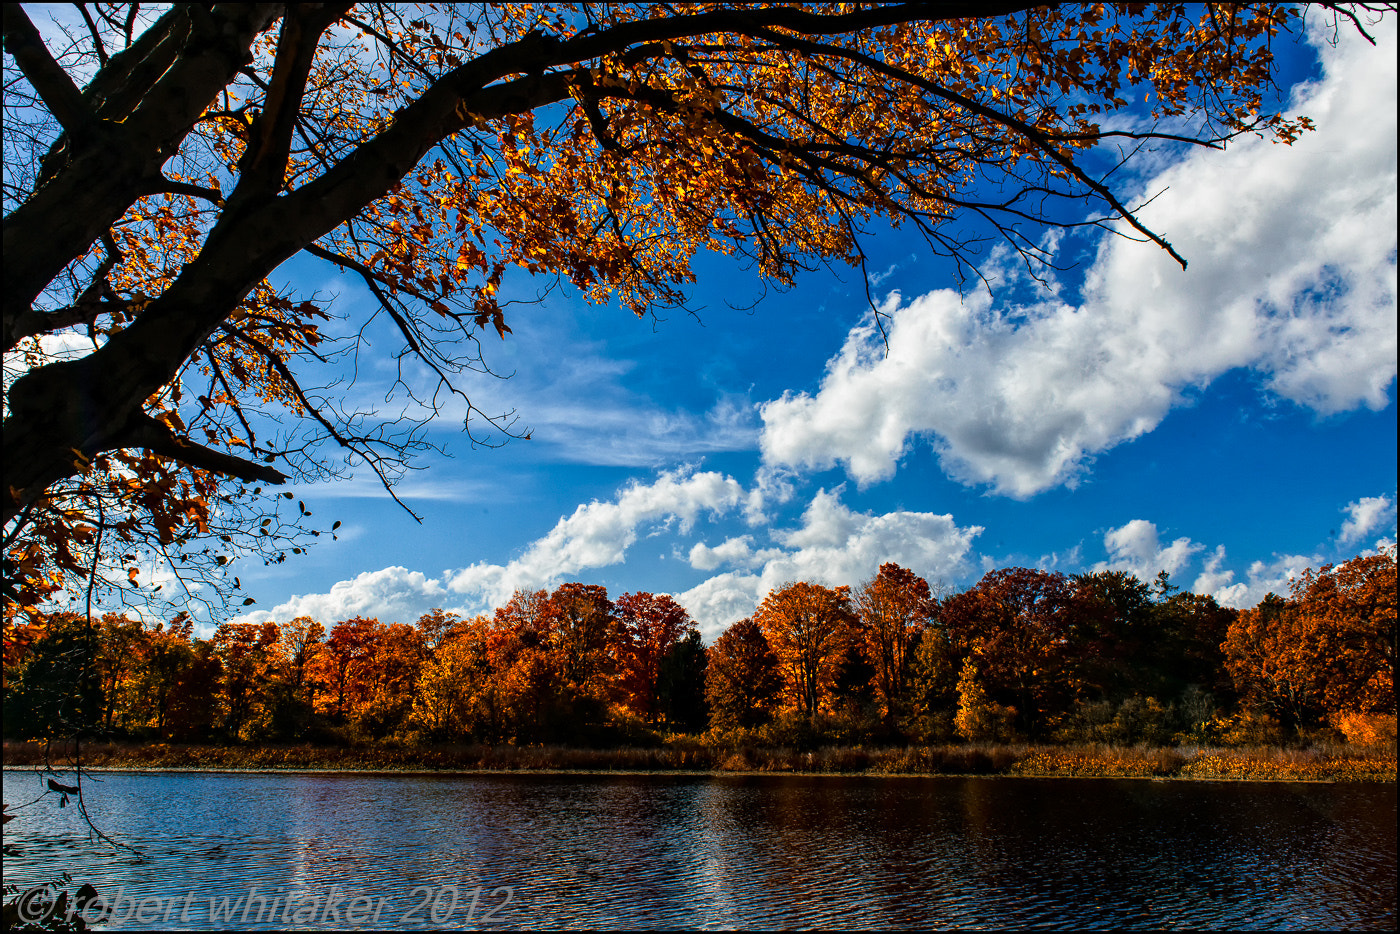 Photograph Boston Fall Colors by Robert Whitaker on 500px